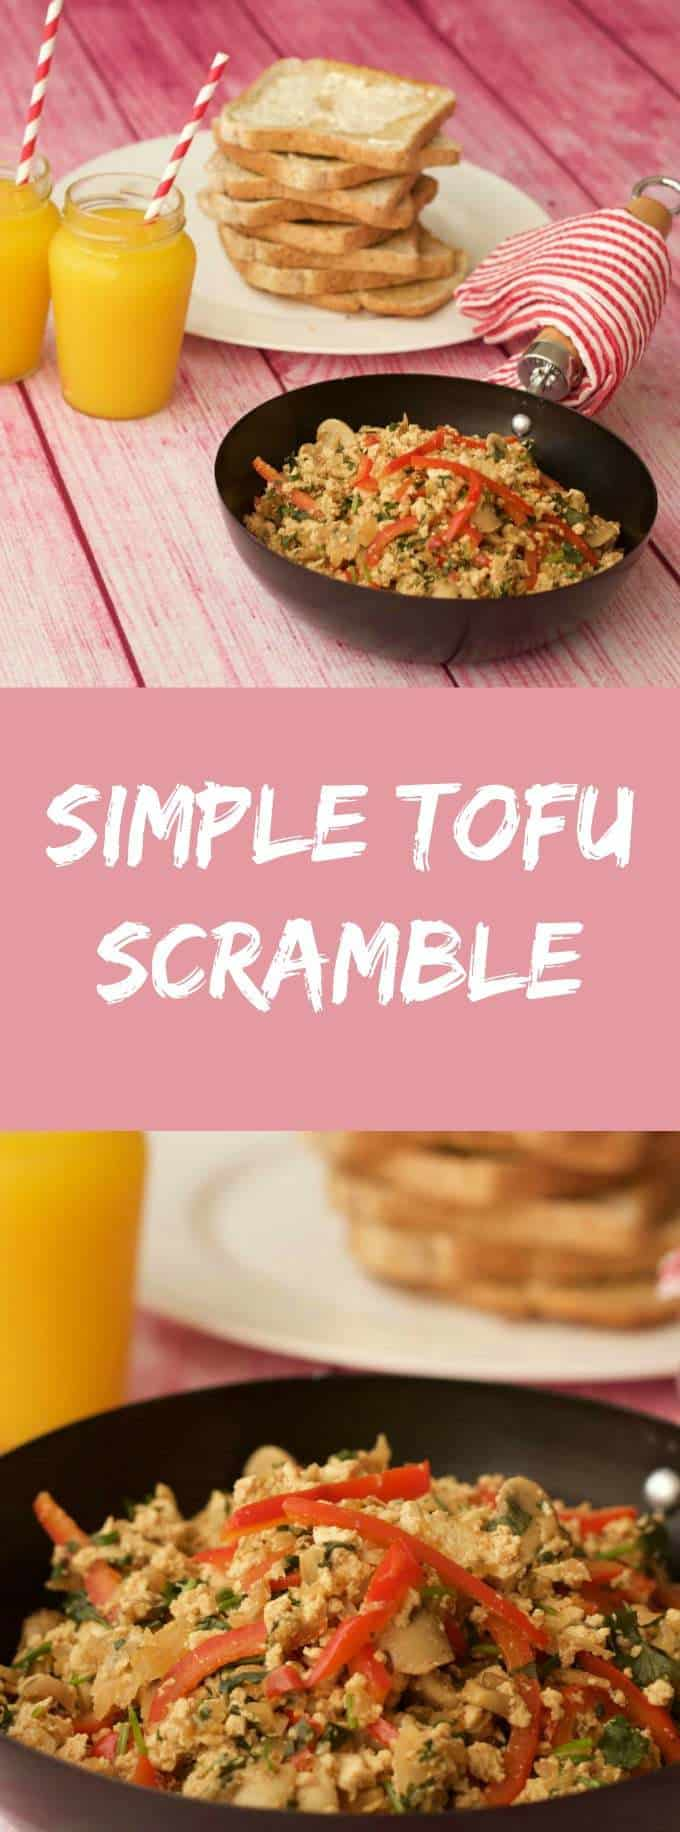 Vegan Tofu Scramble - ideal for breakfast or brunch served with hot toast and fresh squeezed orange juice! #vegan #dairy-free #lovingitvegan